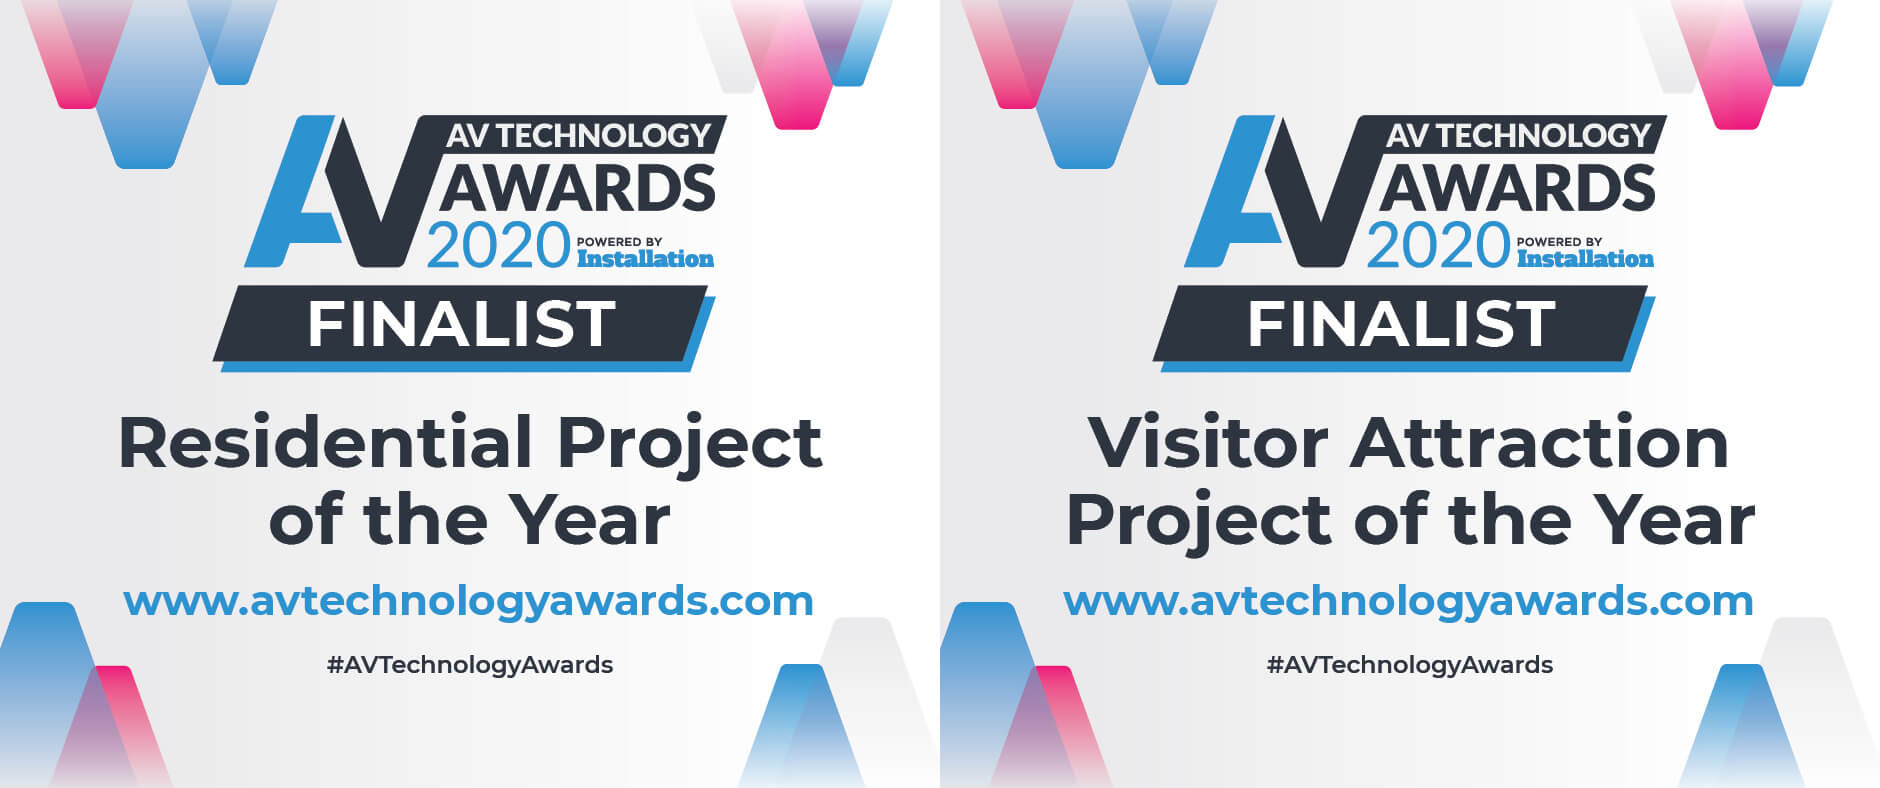 Eclipse Digital Media - Digital Signage and AV Solutions - Shortlisted for Two AV Technology Awards 2020